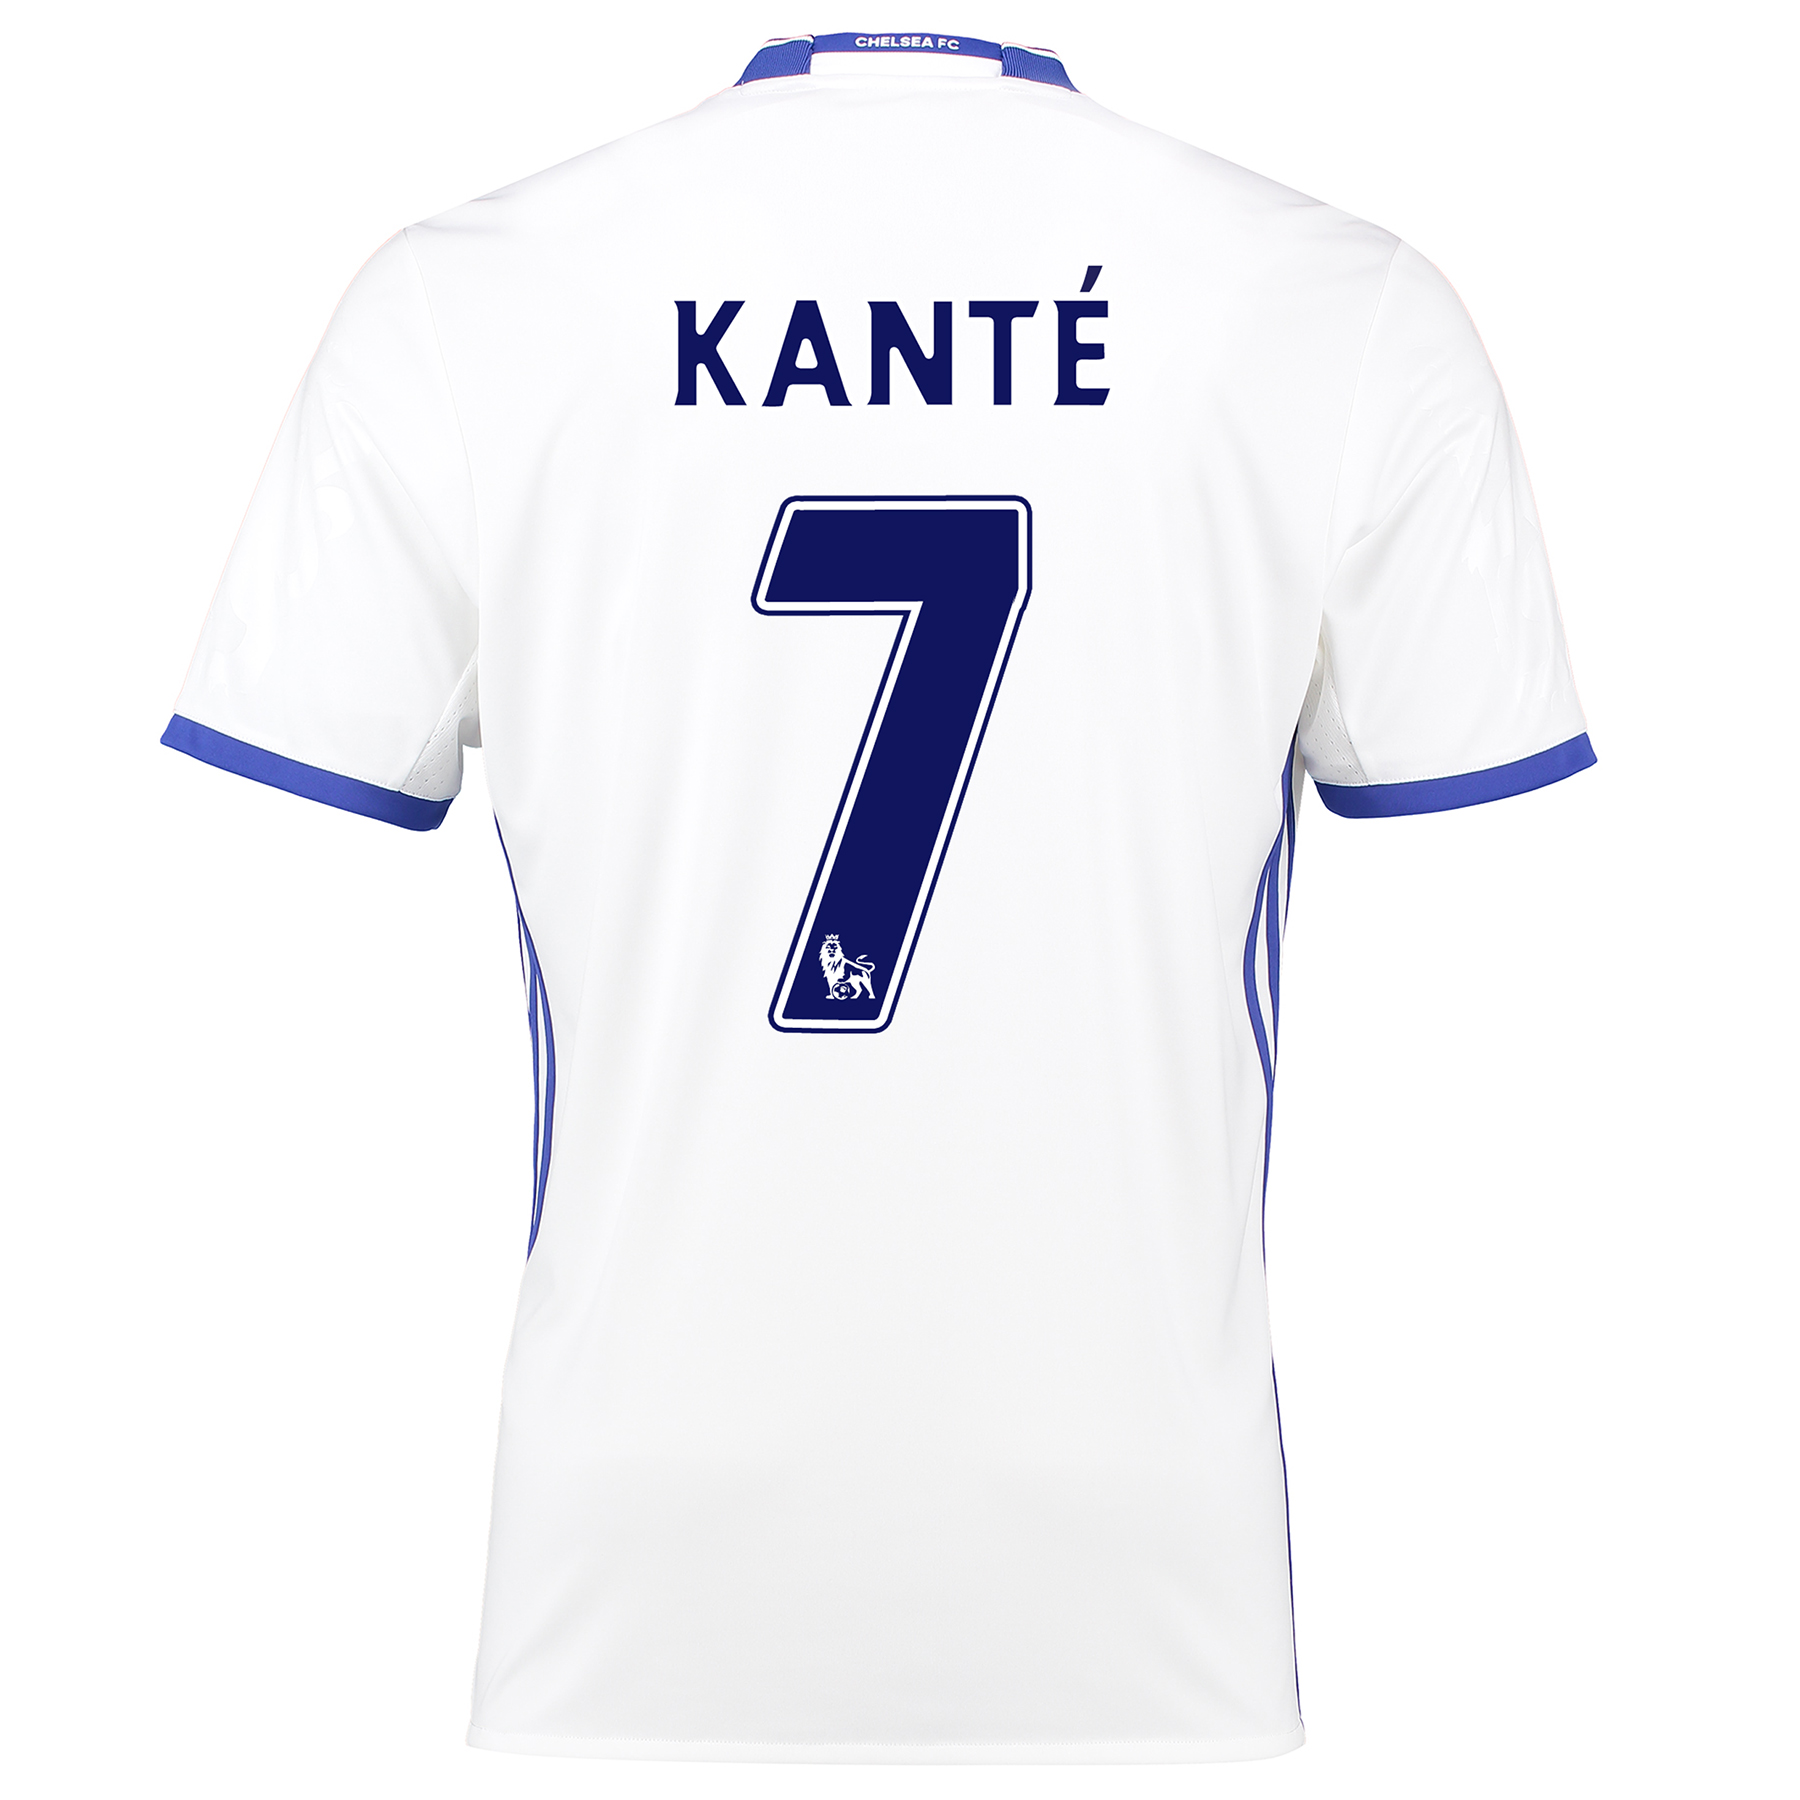 with Kanté 7 printing